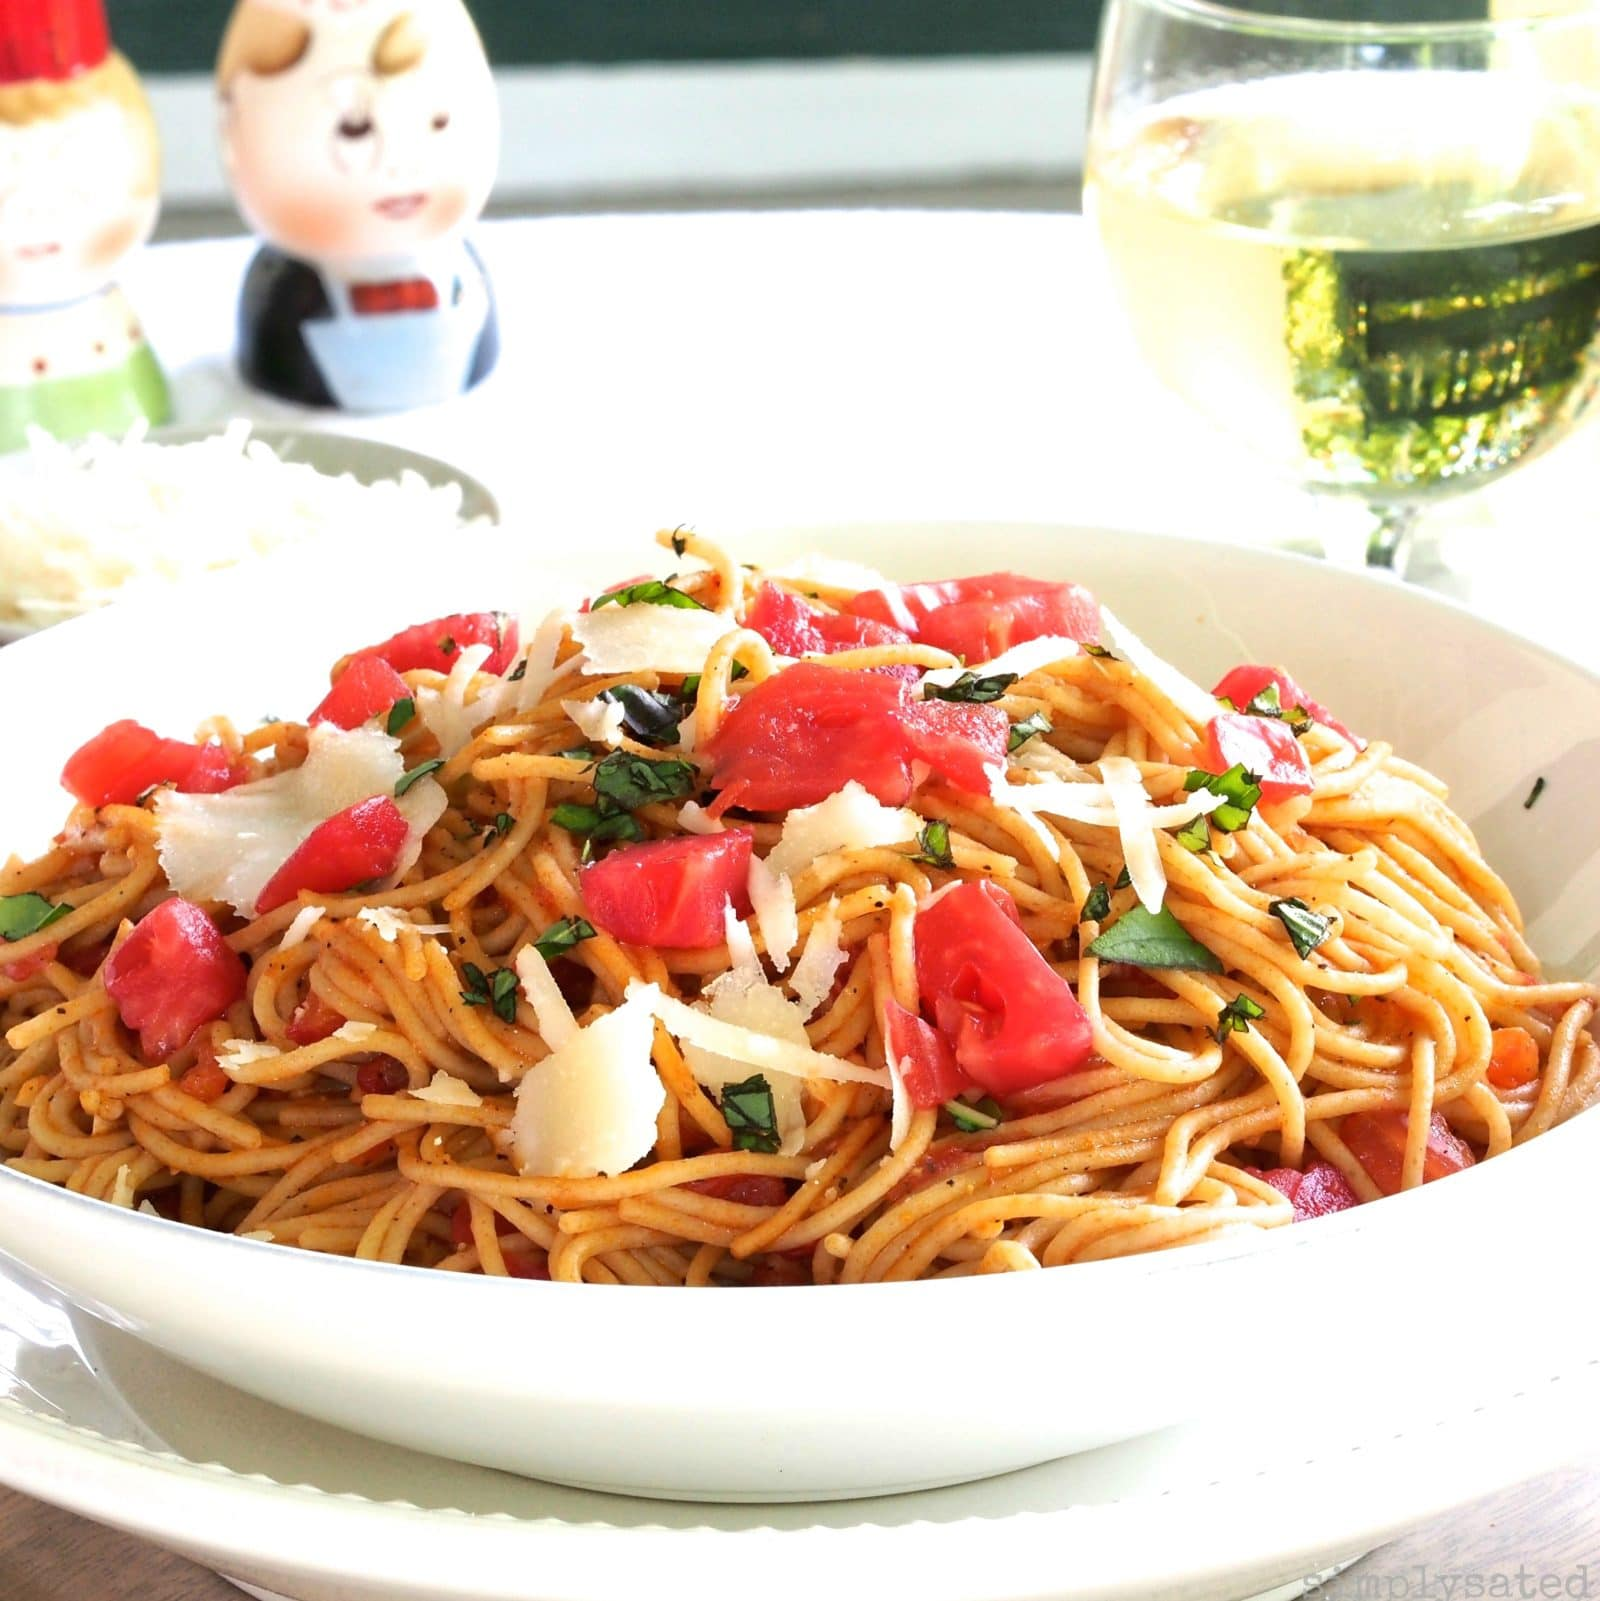 Spaghetti Pomodoro is delicious in its simplicity. Spaghetti, tomatoes, garlic, olive oil, basil and parmesan. simply sated